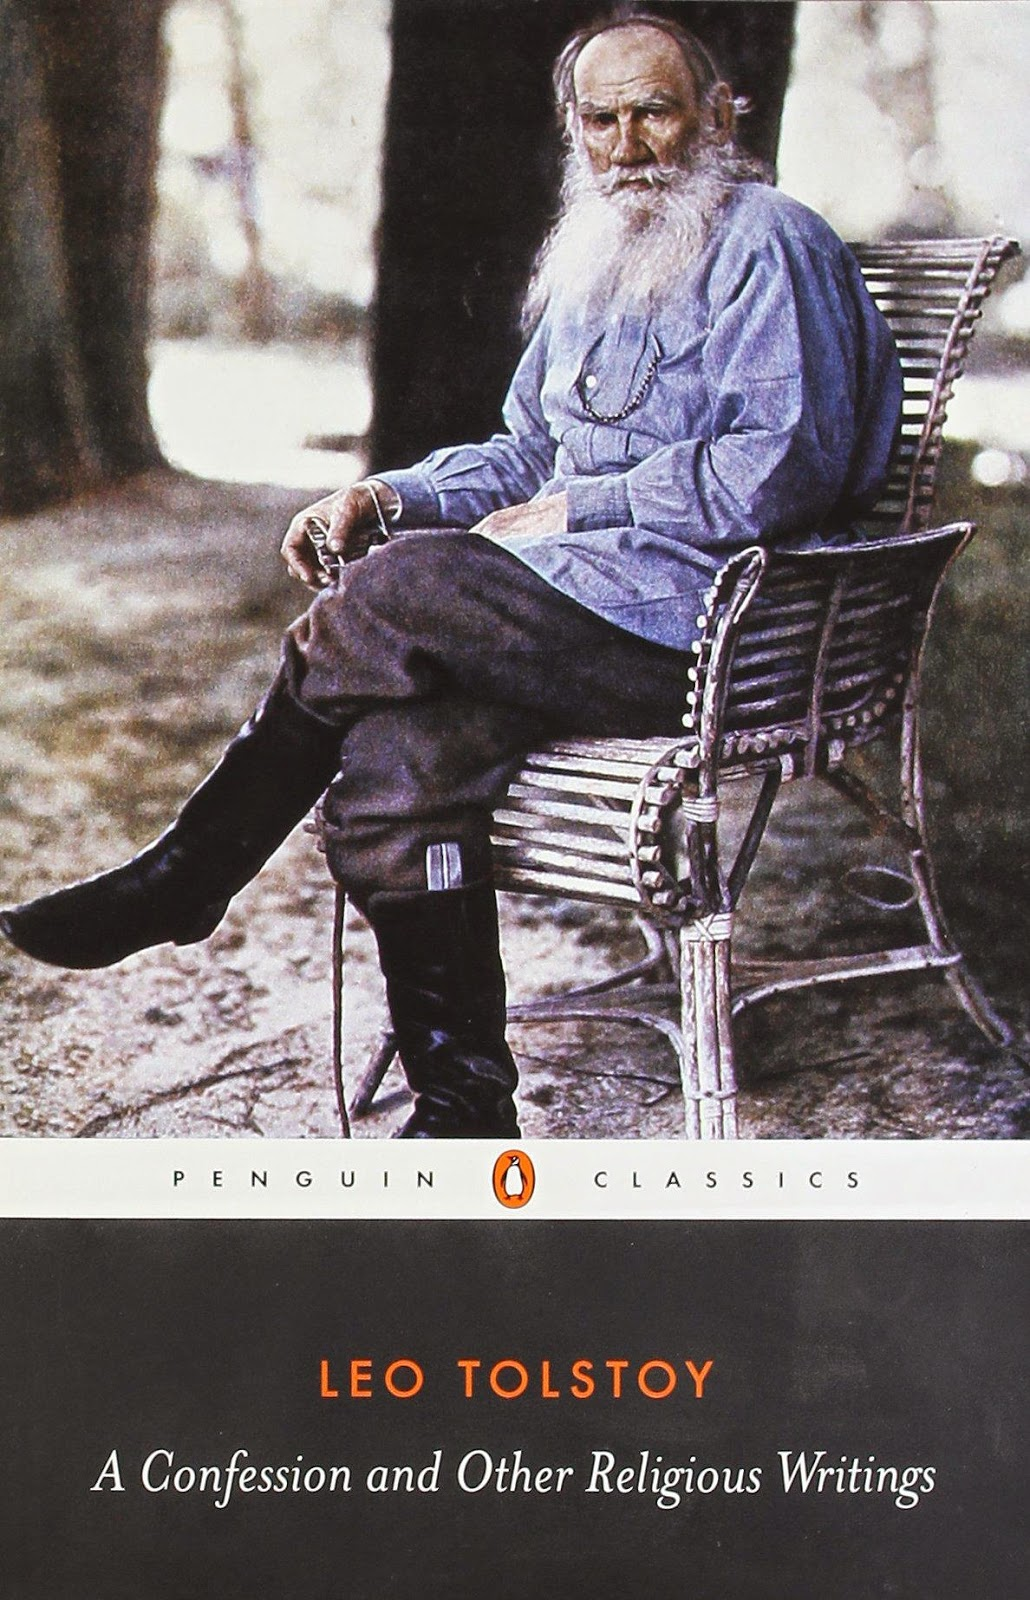 FAMILY HAPPINESS LEO TOLSTOY PDF DOWNLOAD